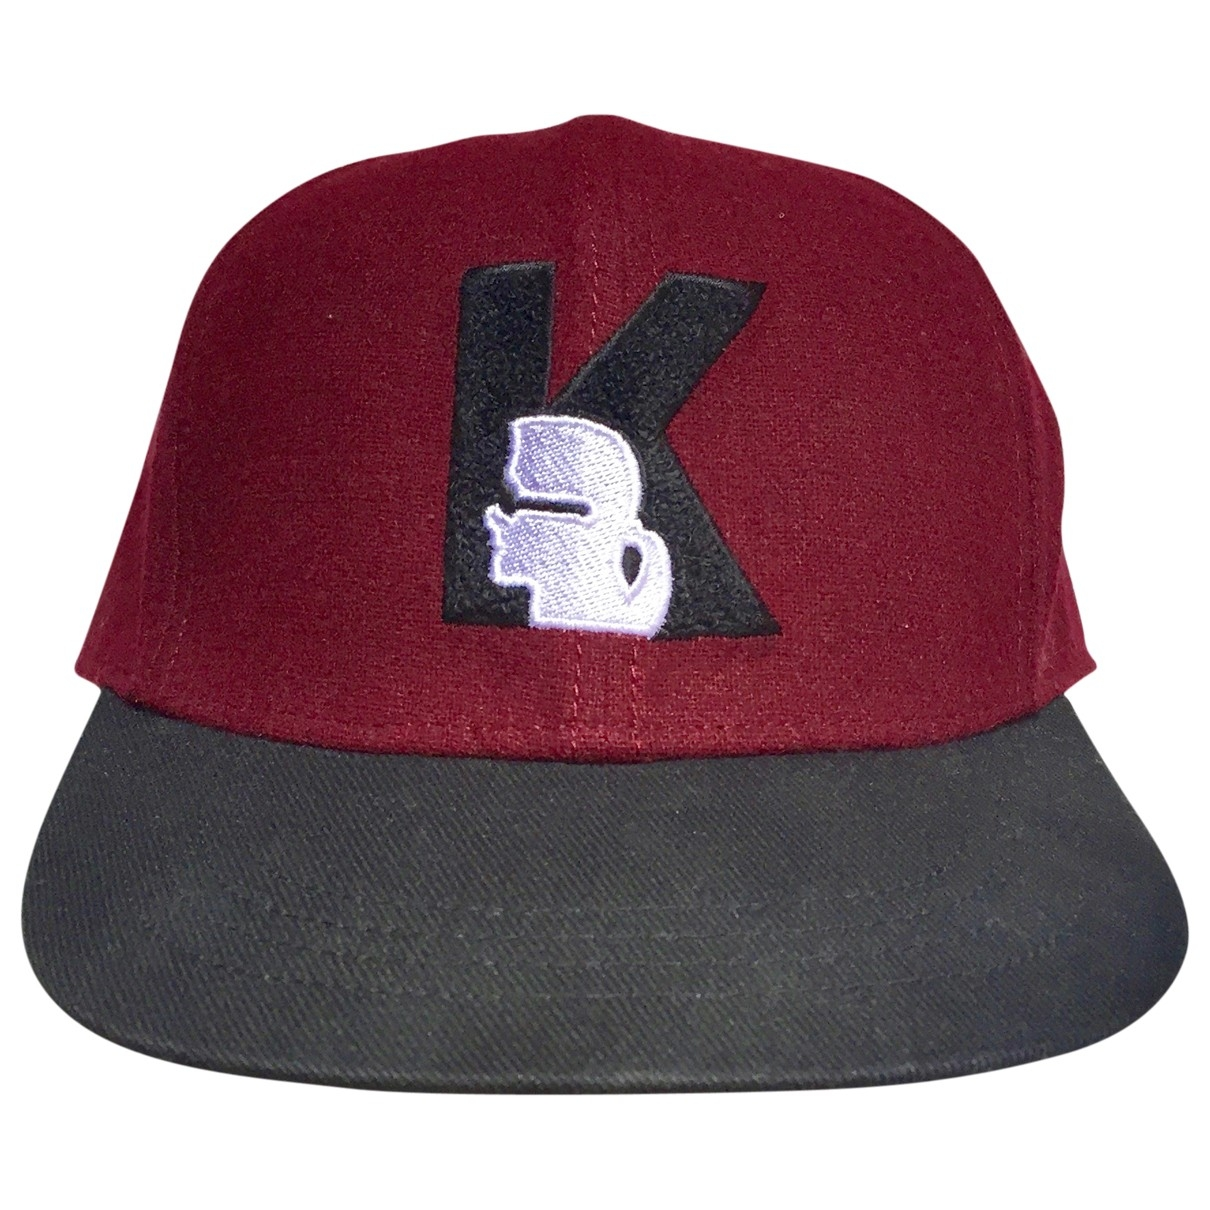 Karl Lagerfeld \N Burgundy Wool hat & pull on hat for Men 22.2 Inches